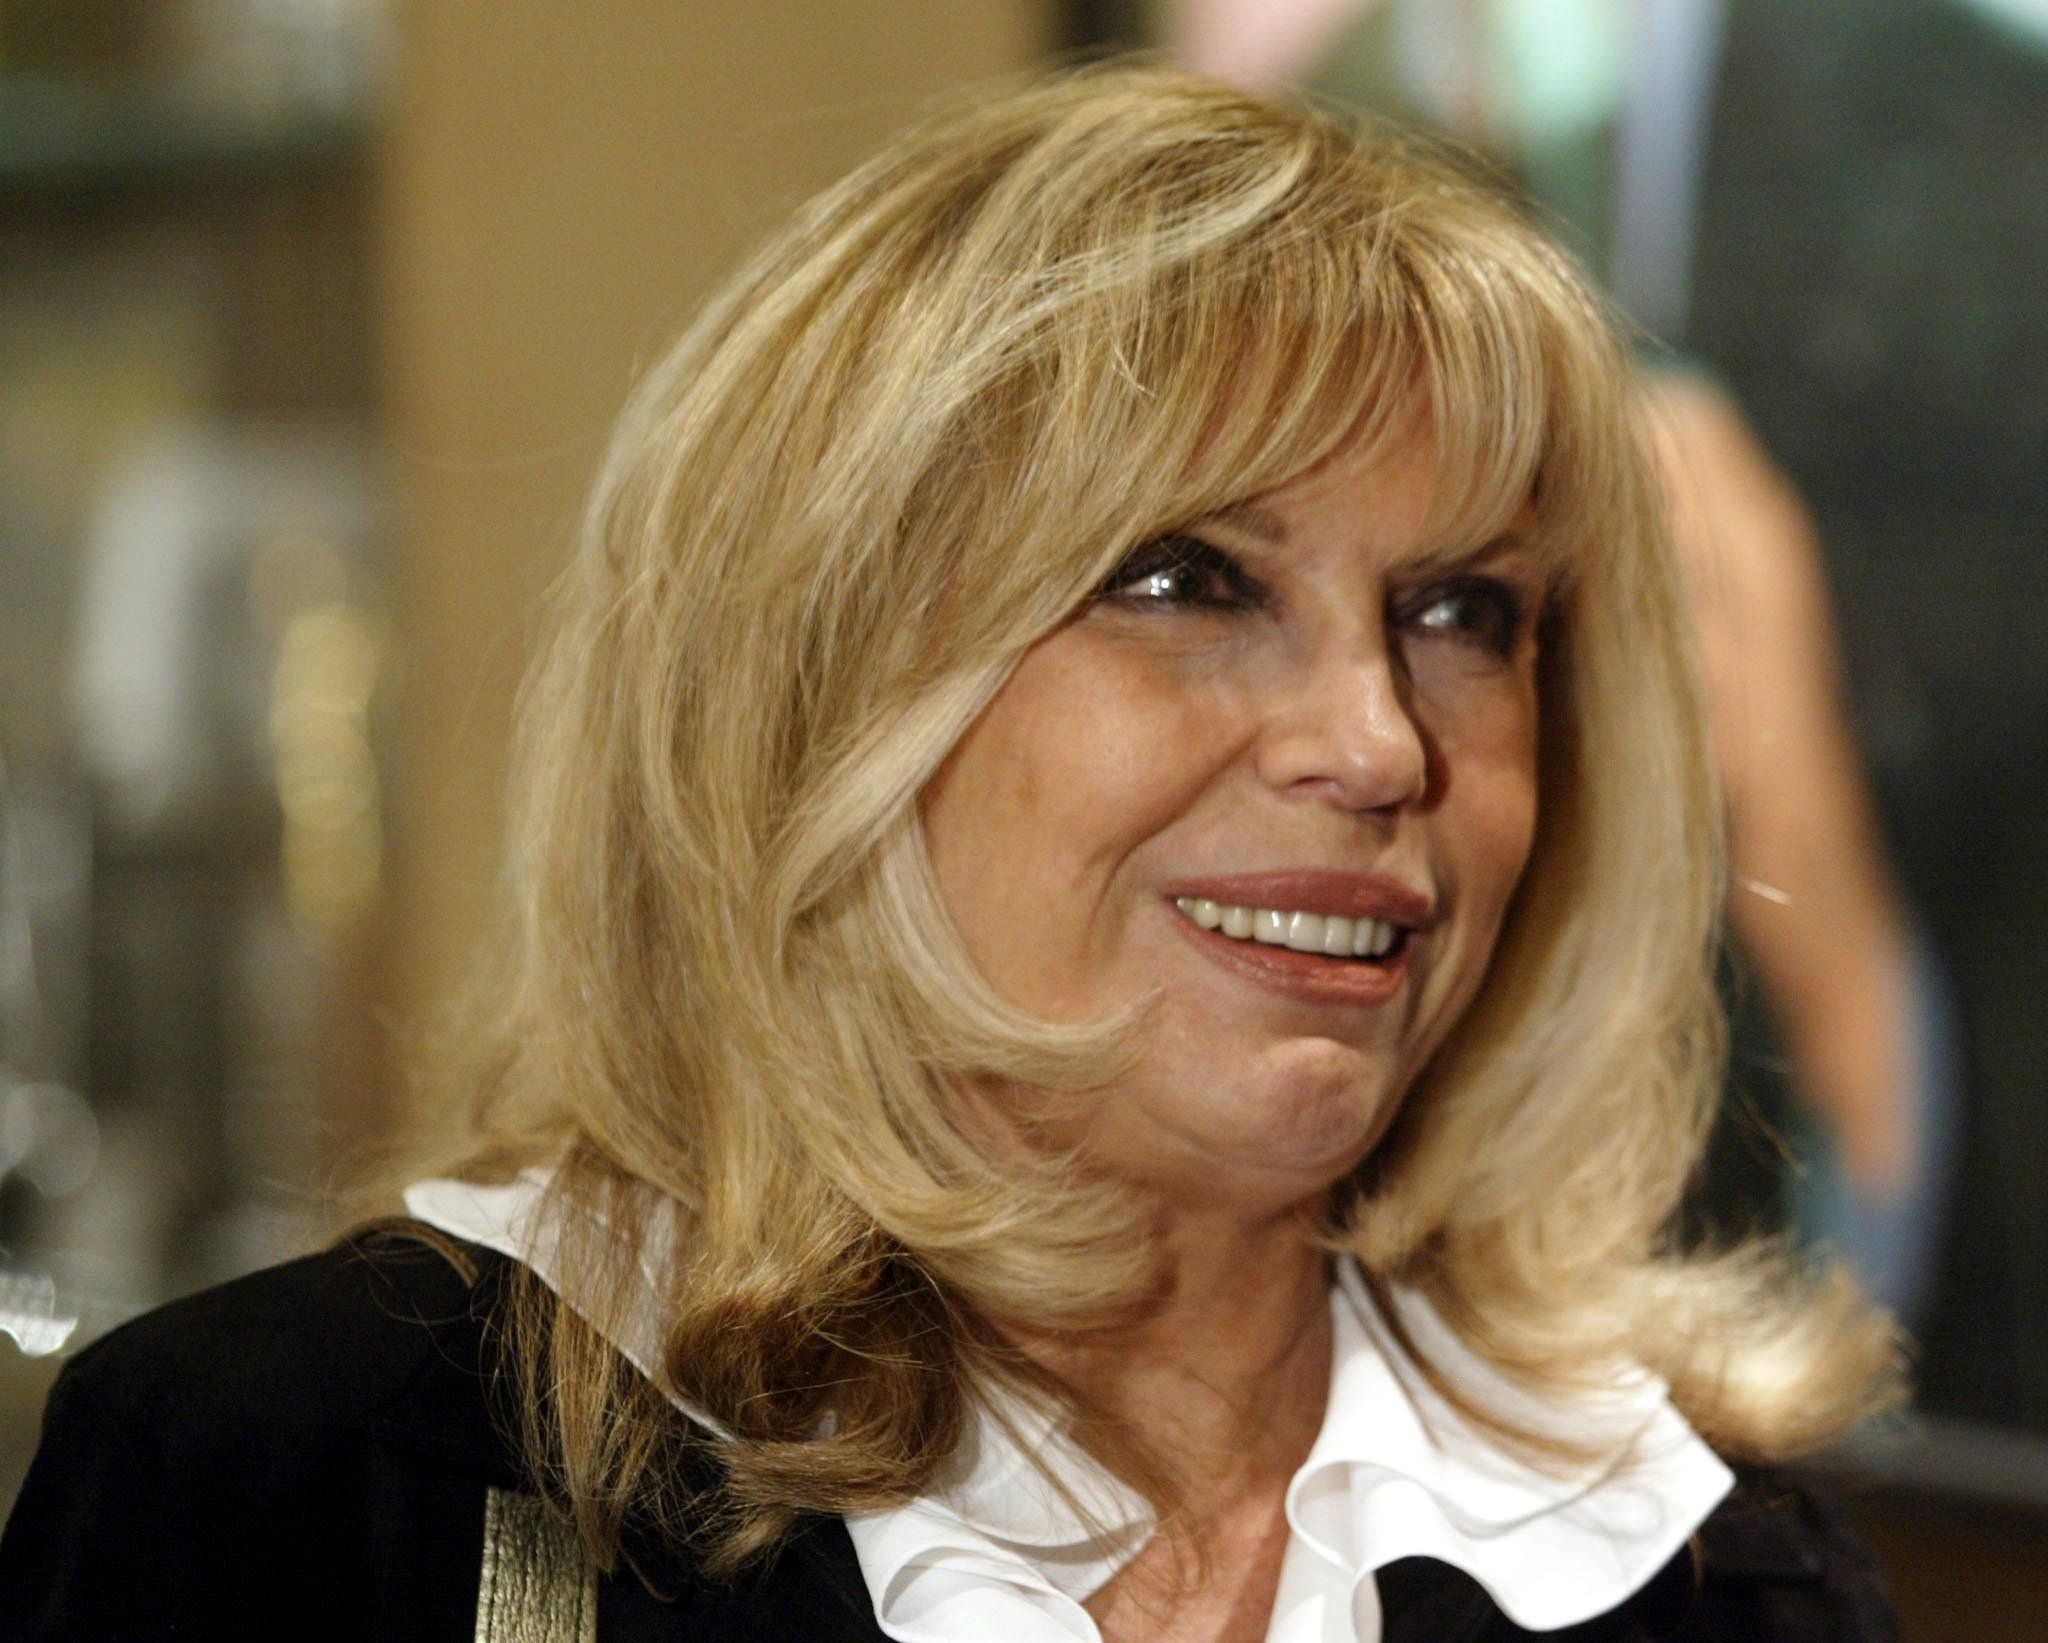 Nancy Sinatra, daughter of the late singer Frank Sinatra is interviewed at the dedication of the Frank Sinatra Hall at the University of Southern California School of Cinema-Television in Los Angeles, November 18, 2002. [Nancy and her sister Tina Sinatra provided memorabilia from their father's life and career which will be on display at the hall until March 2003. Sinatra died May 15, 1998.]